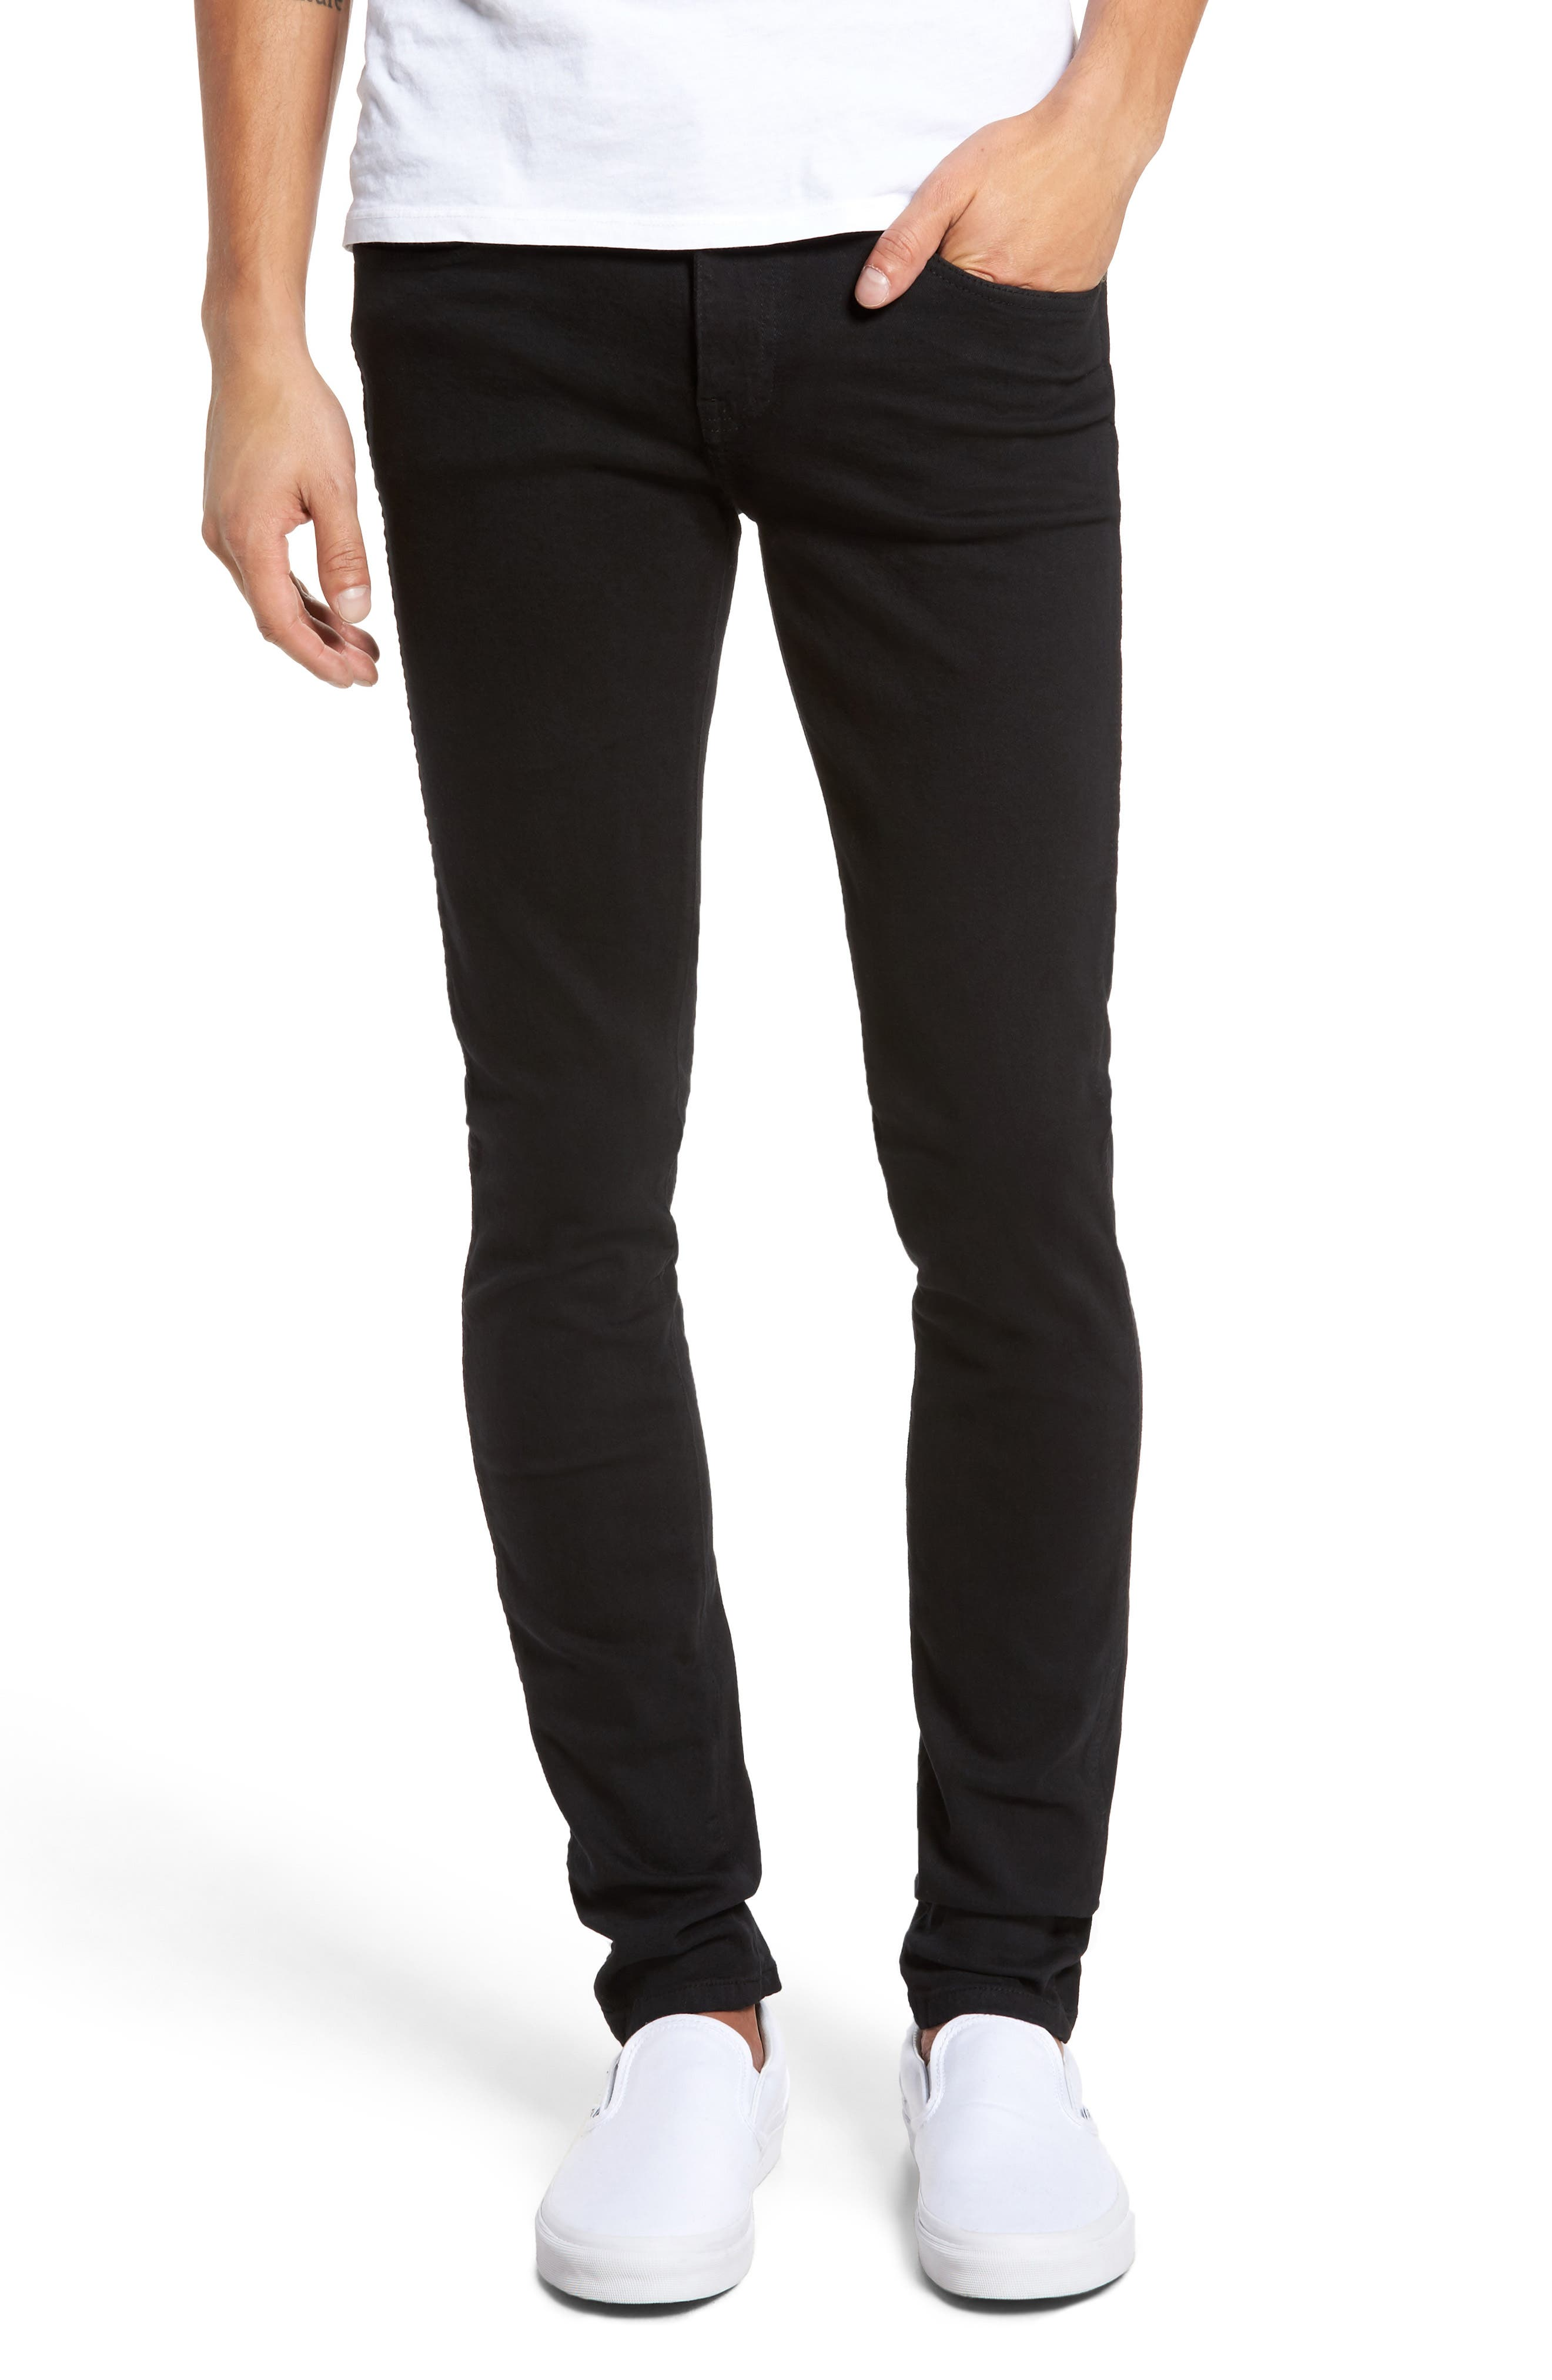 Snap Skinny Fit Jeans,                         Main,                         color, BLACK